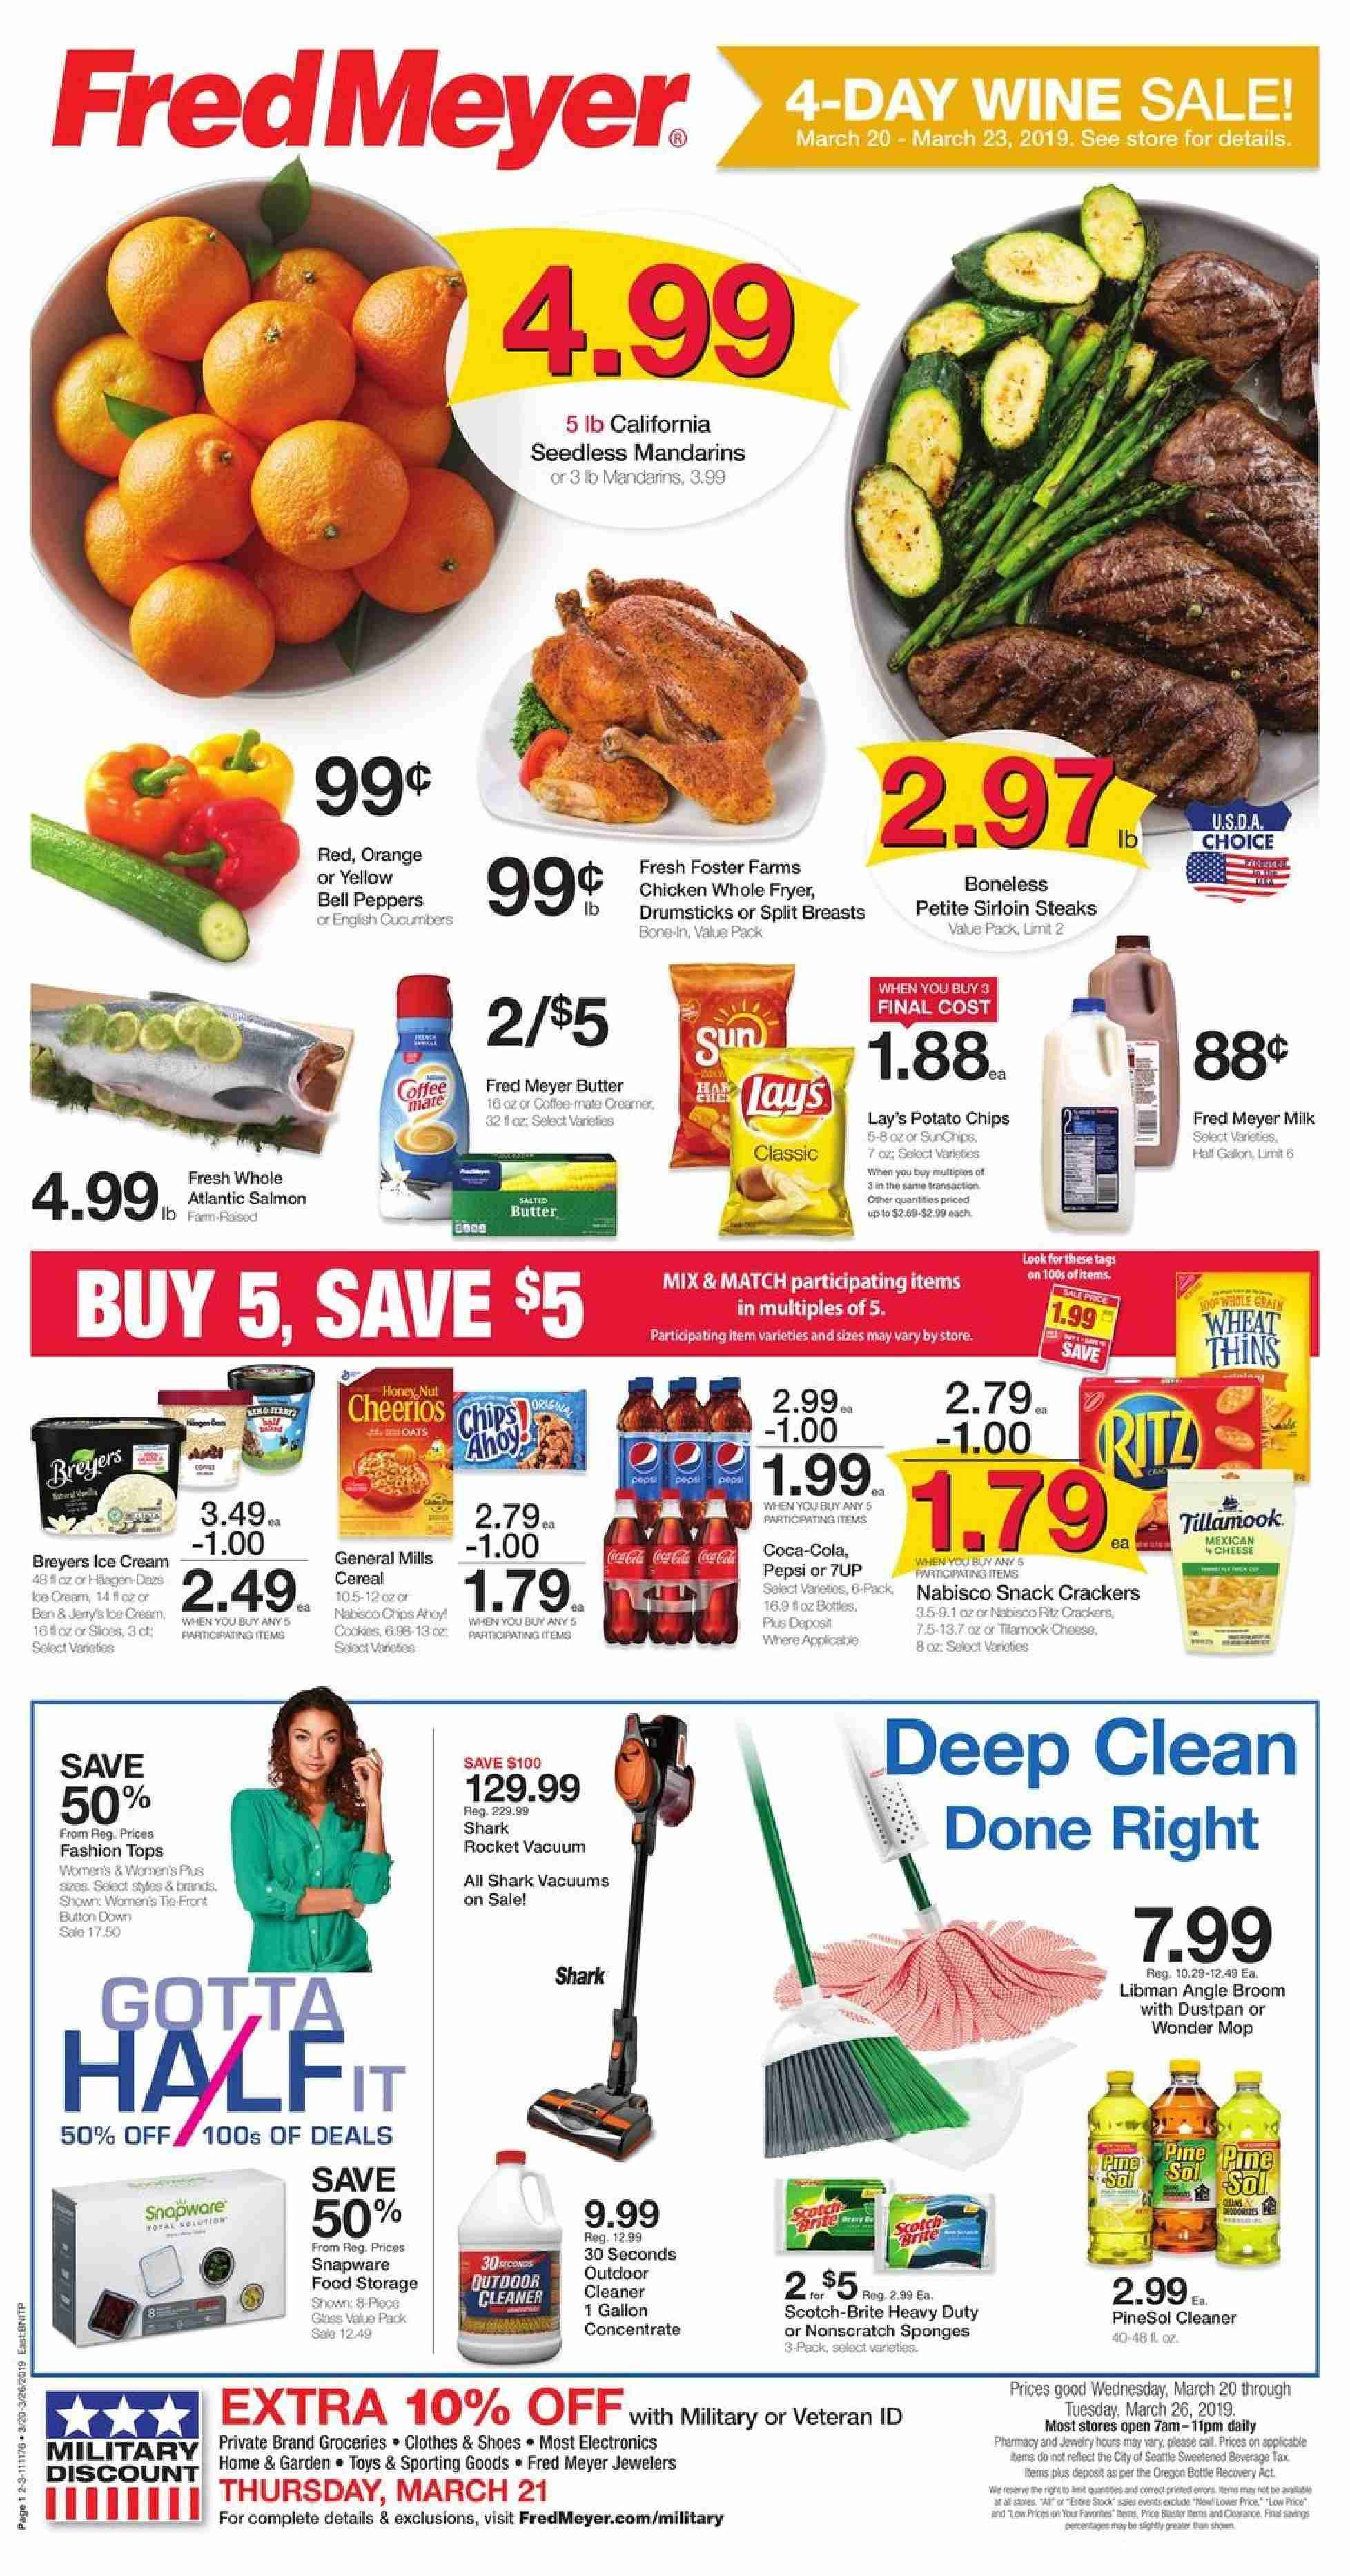 Fred Meyer Flyer - 03.20.2019 - 03.26.2019 - Sales products - salmon, milk, butter, ice cream, cracker, crackers, potato chips, chips, snack, Lay's, Coca-Cola, wine, chicken, cleaner, sponge, glass, rocket, toys. Page 1.